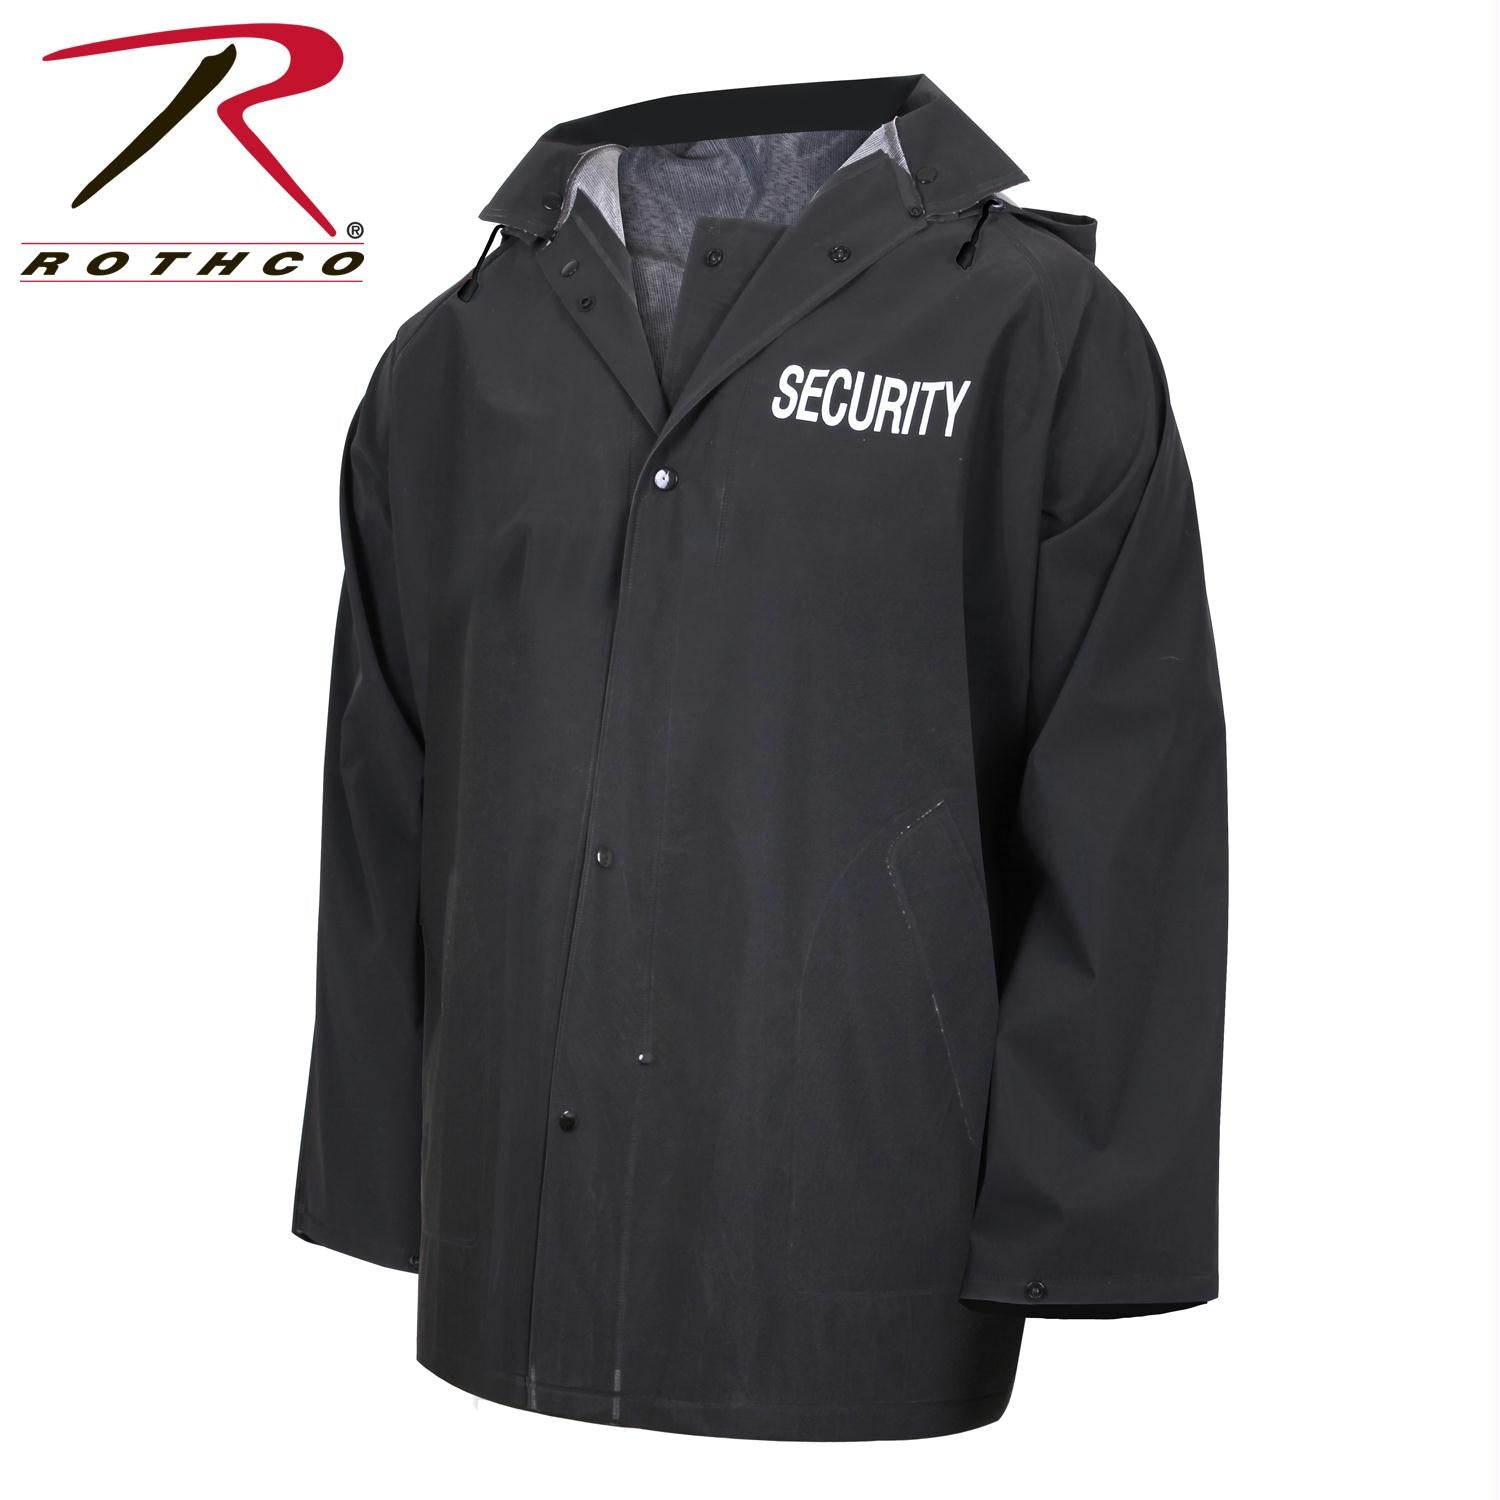 Rothco Security Rain Jacket - 3XL